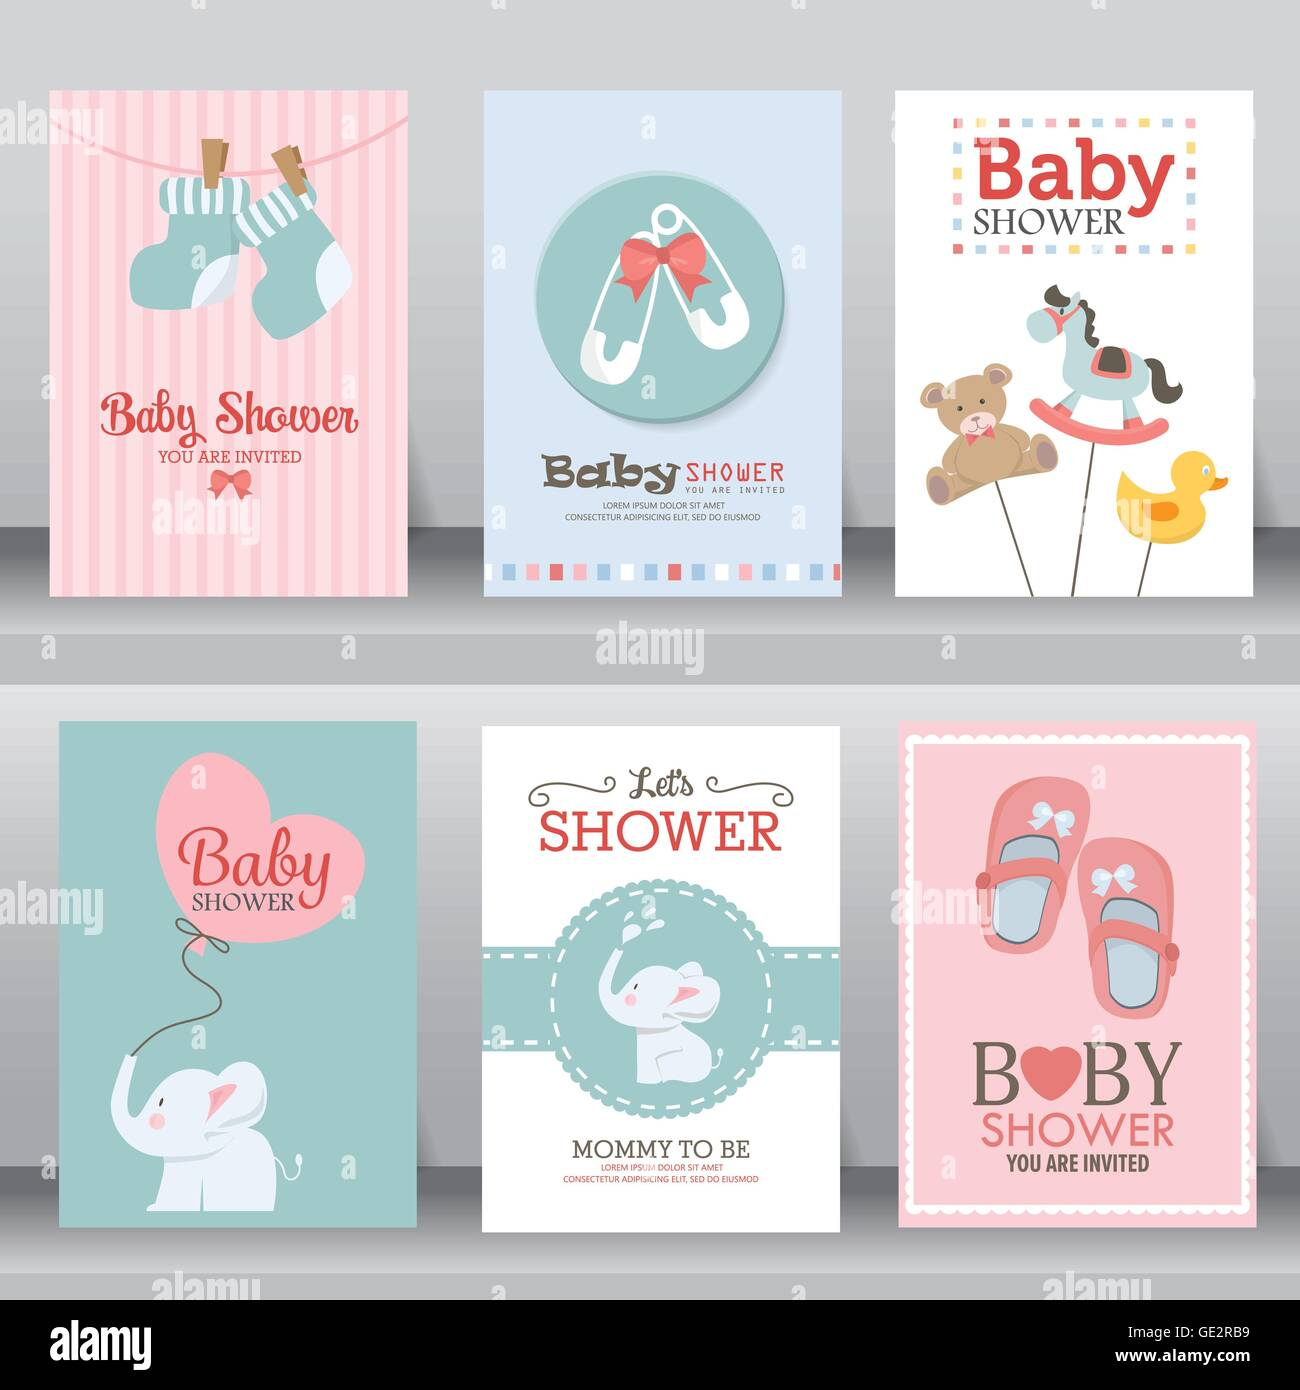 baby shower party greeting and invitation card layout template in – Invitation Card Size